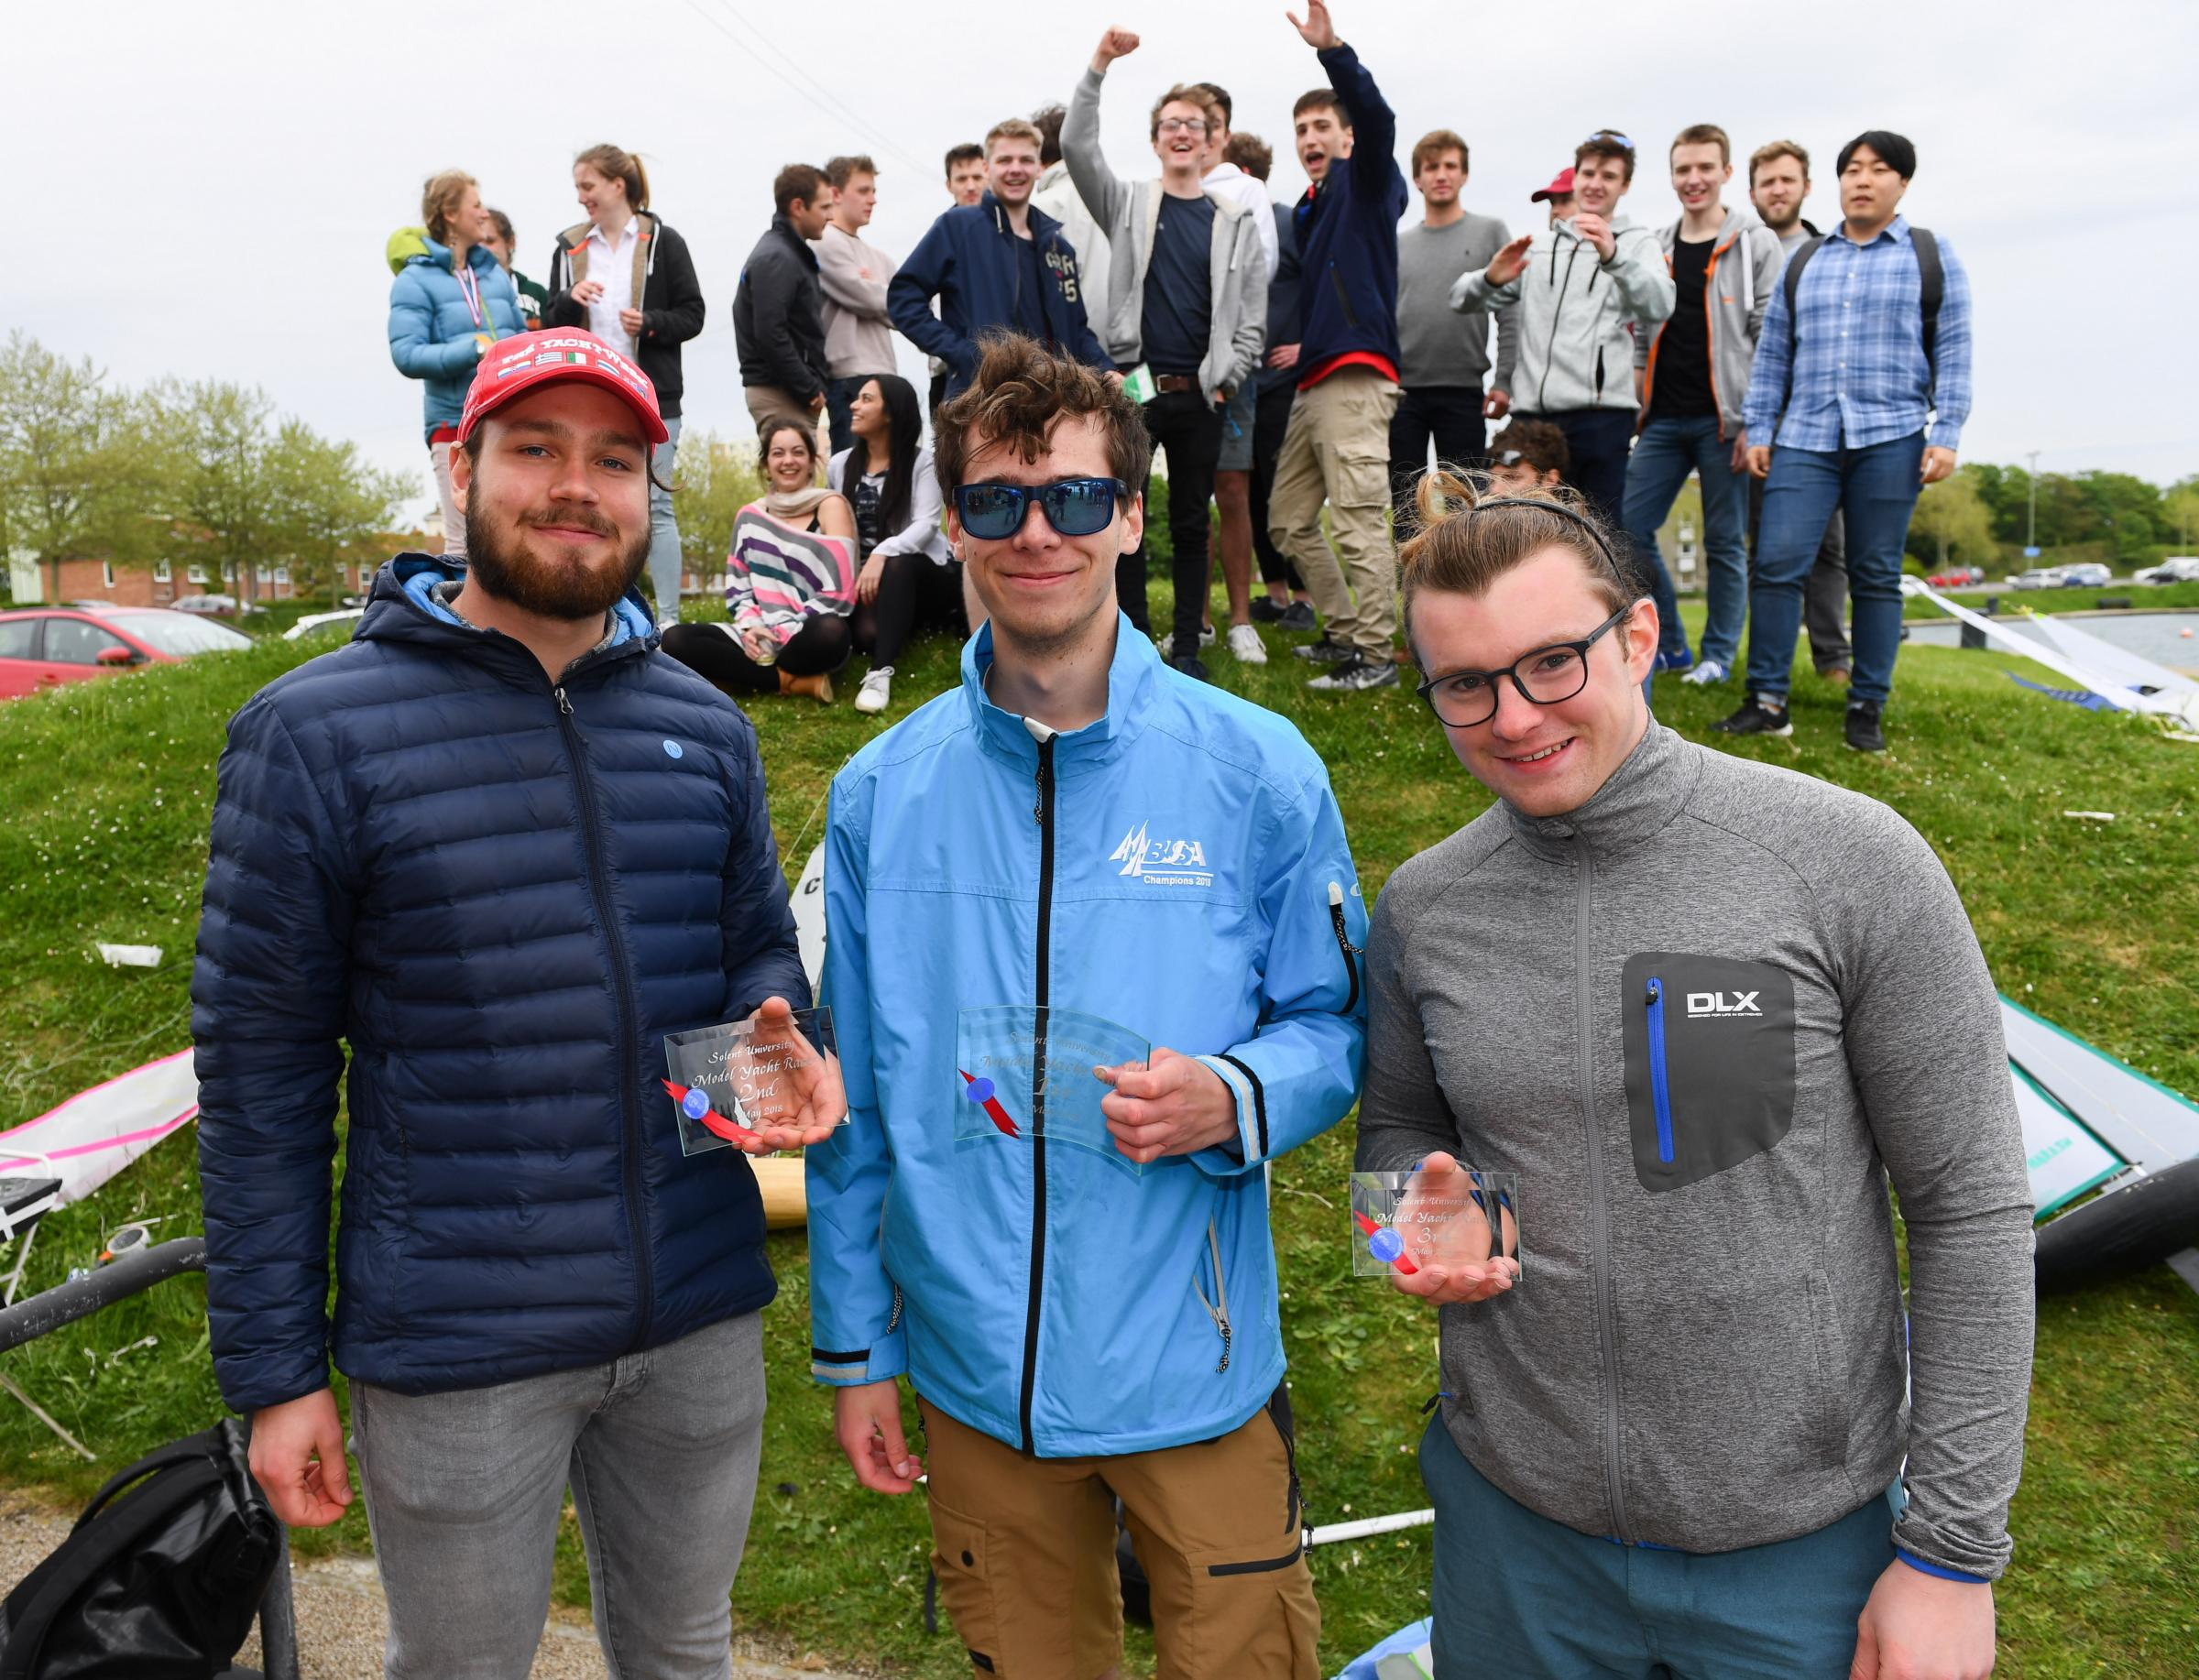 Paul Watts/PBWPIX - Solent Sailing competition winners  (L-R) Elias Paakkinen (2nd place), Noah McWatters (1st place) and Felix Trattner (3rd Place)